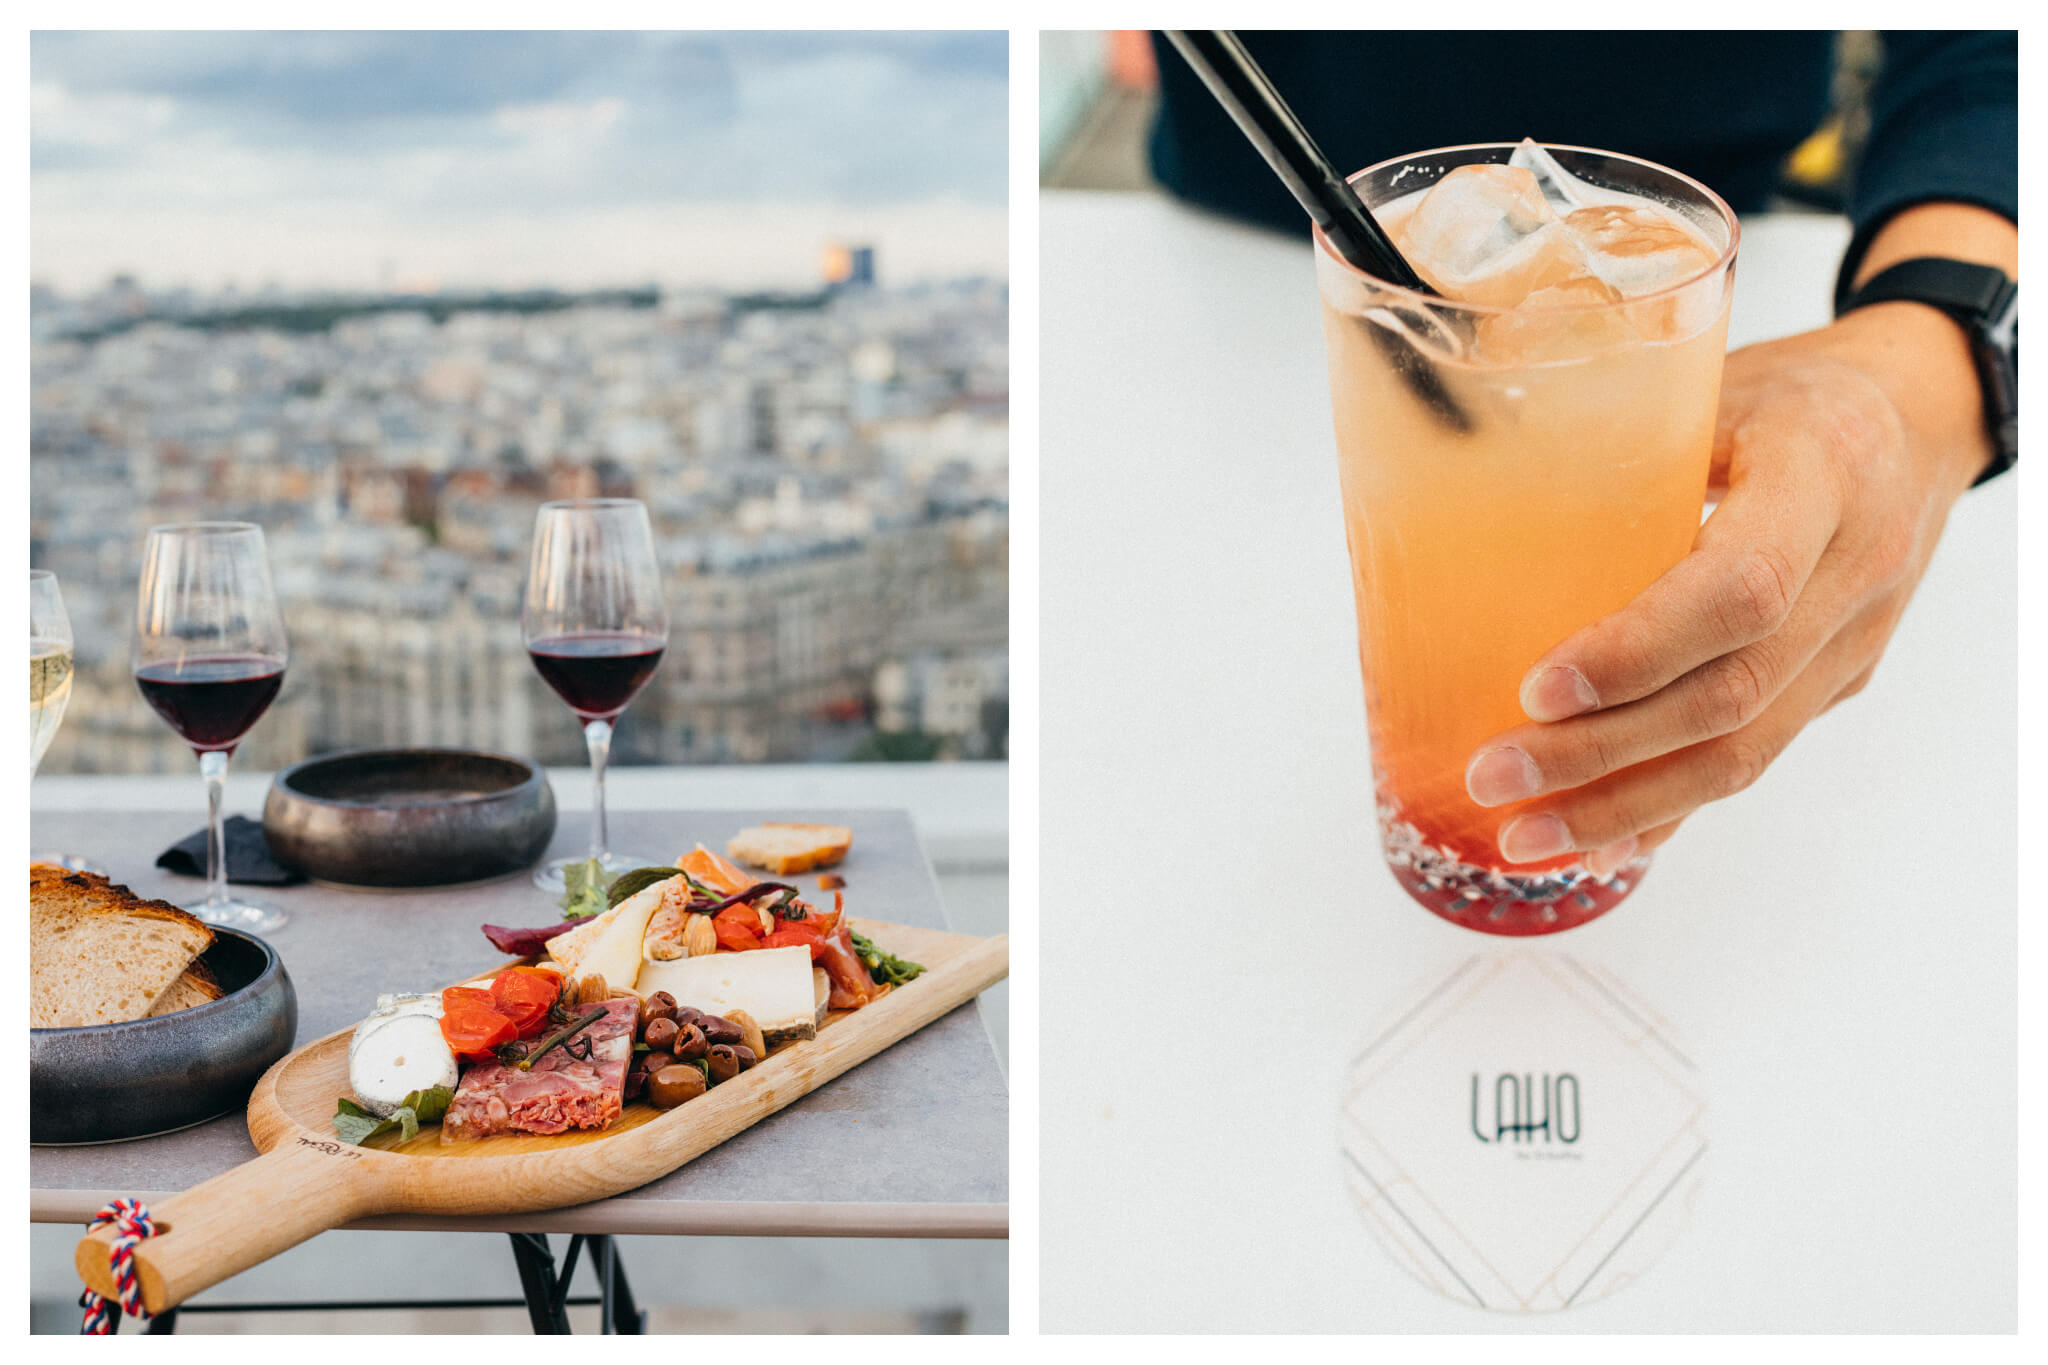 Left: a platter of cheese and charcuterie sitting on a table with two glasses of red wine behind it and a bowl of bread to the left. In the background is a view of the Parisian rooftops. Right: an orange coloured cocktail with some red at the bottom, ice and a straw, held by the bartender's hand. Underneath the glass is the logo of the bar and its name, Laho.